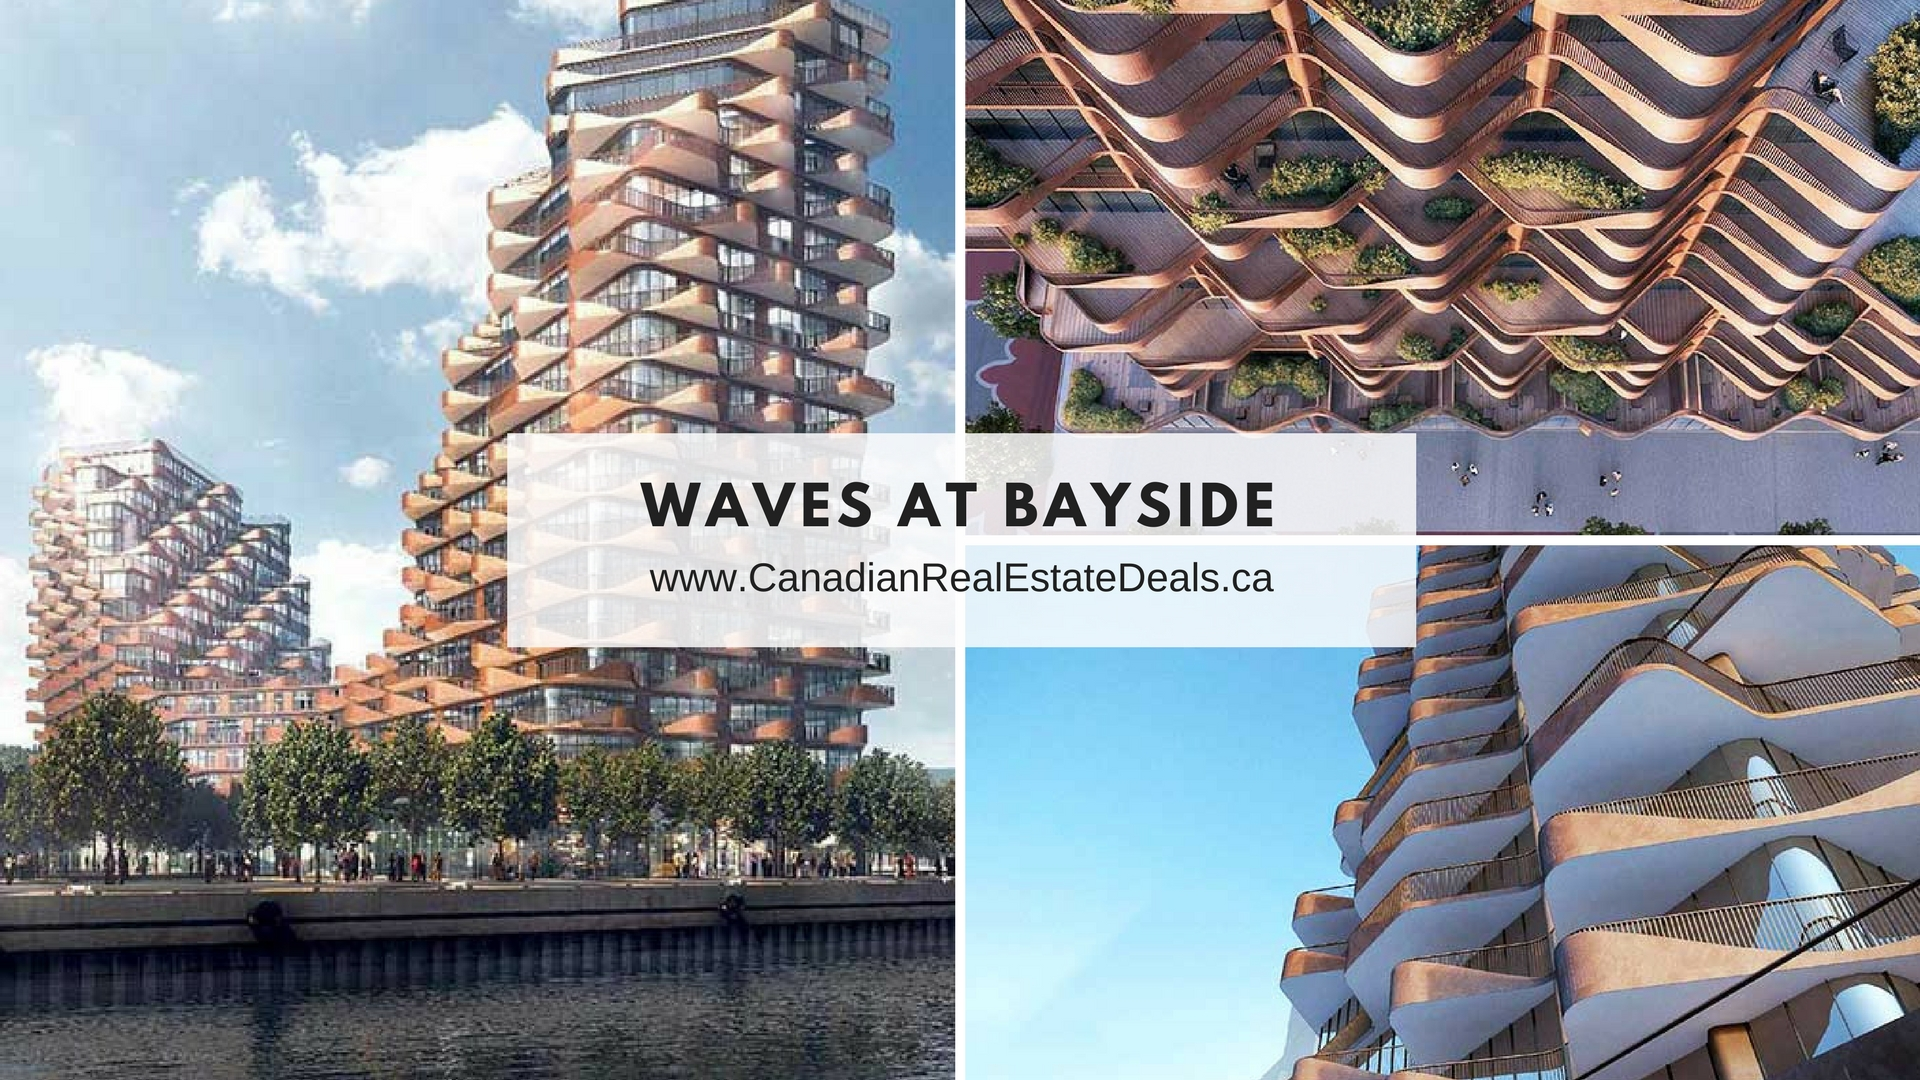 Toronto new condos - waves at bayside